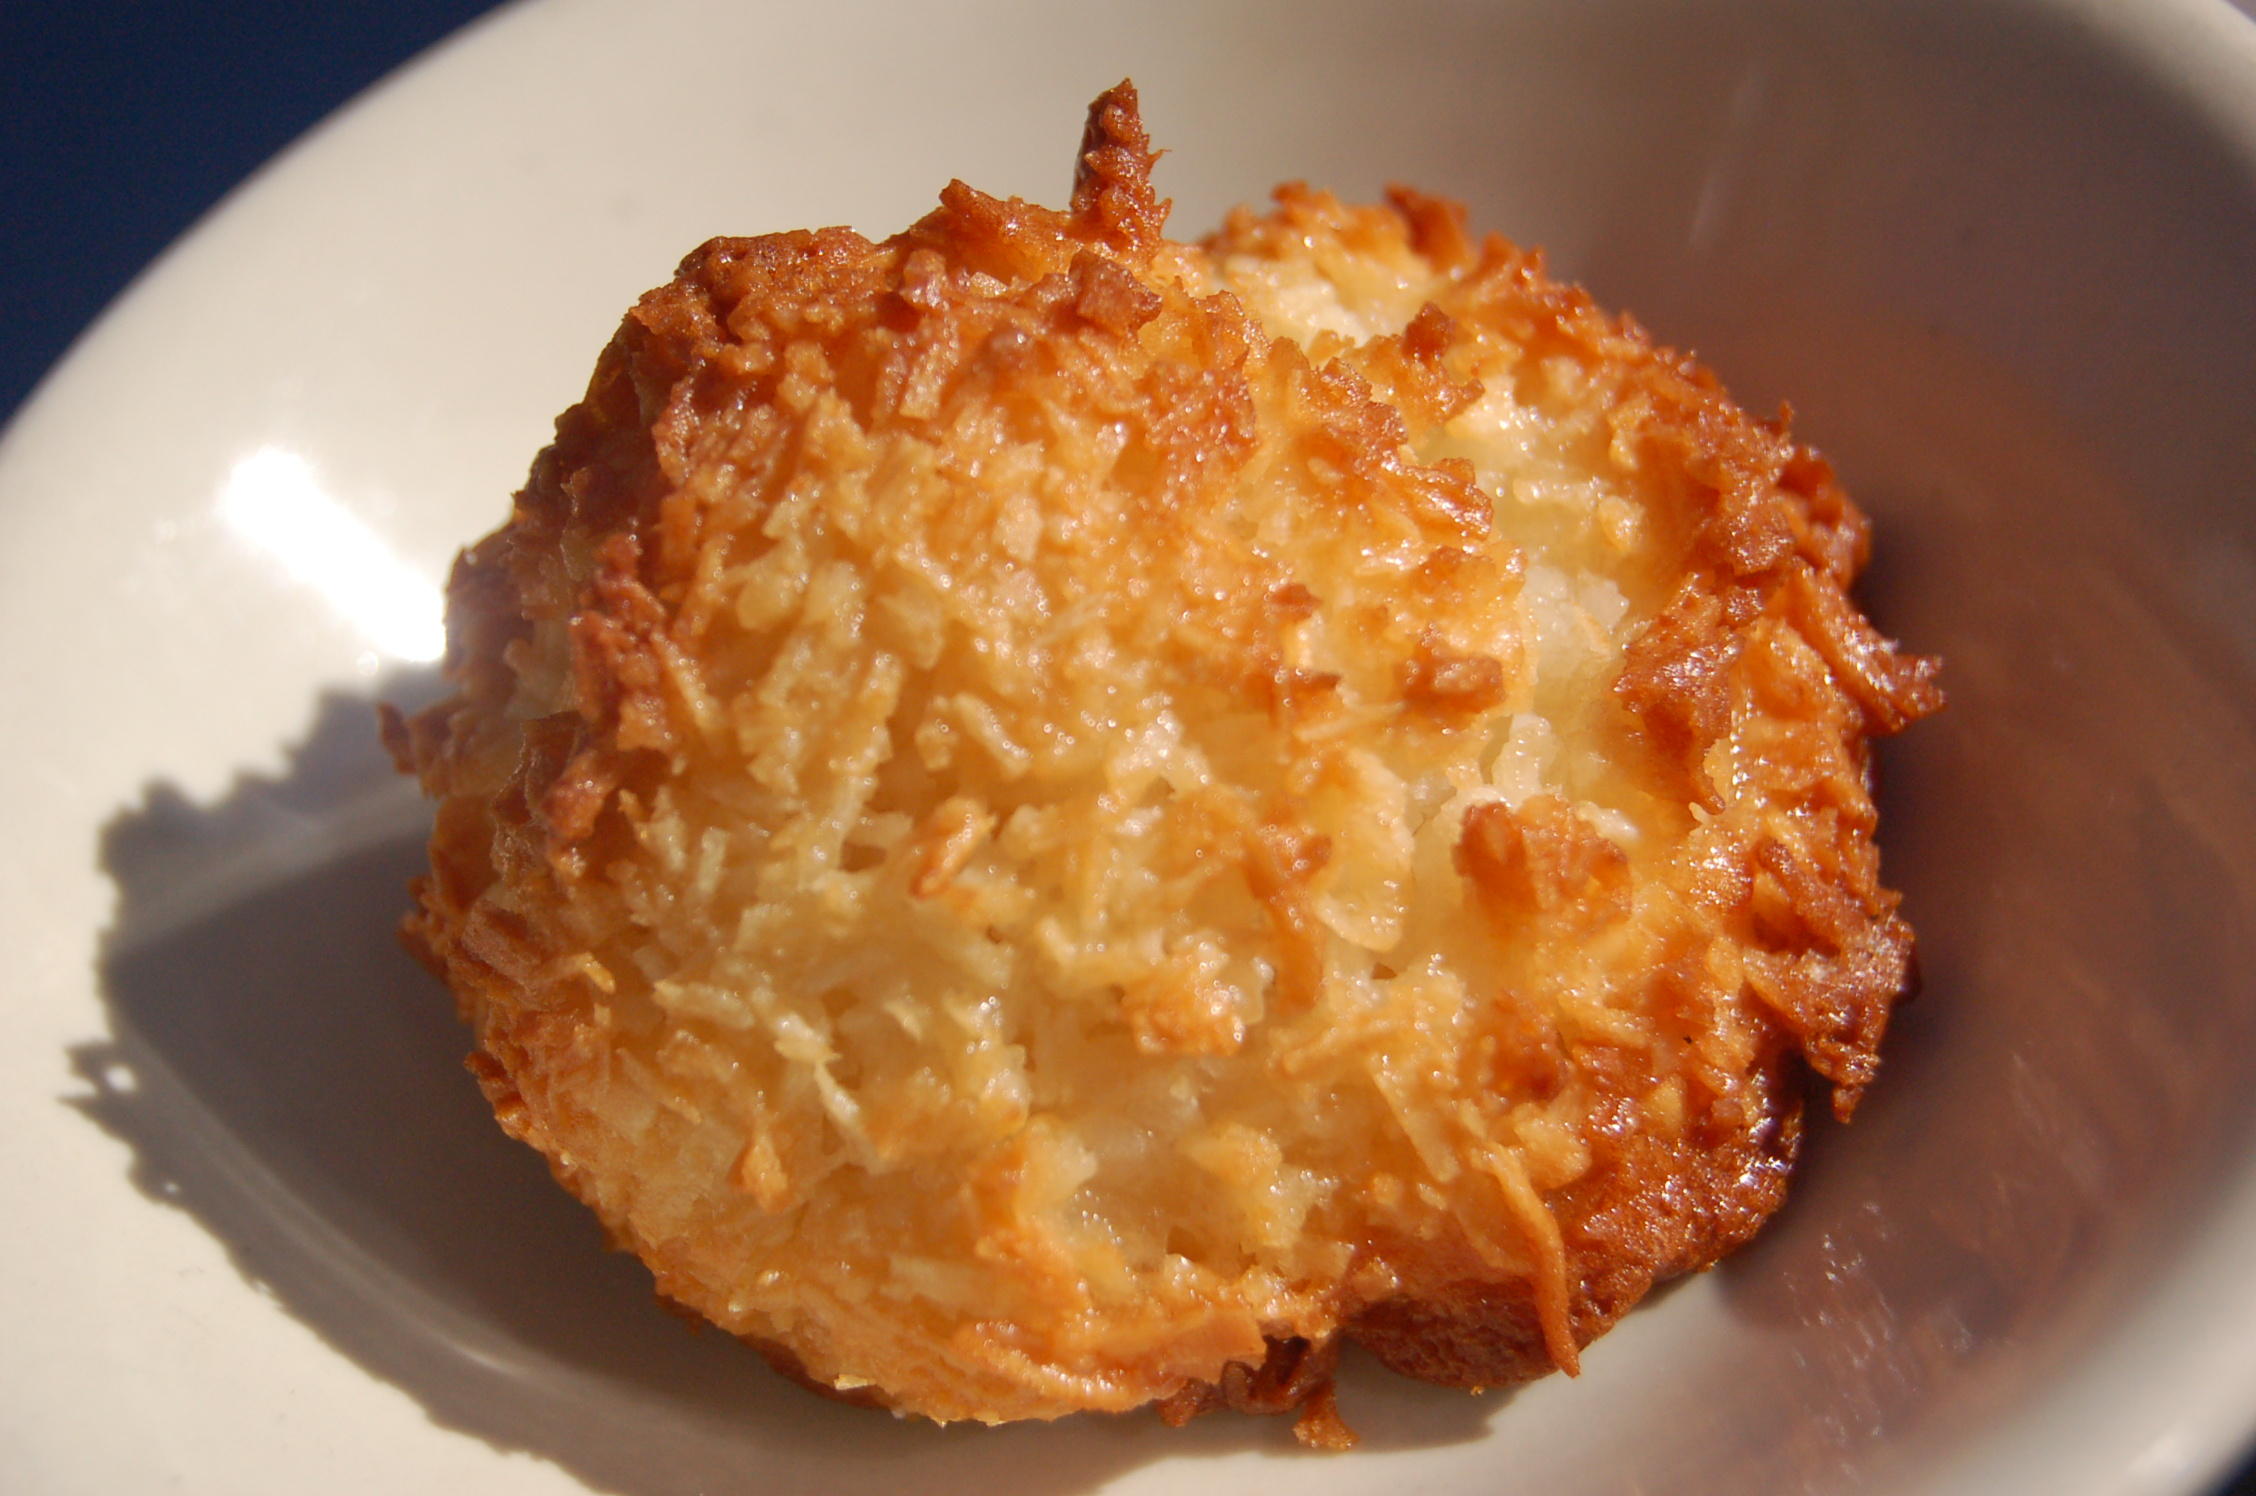 File:Sofra Coconut macaroon, October 2009.jpg - Wikimedia Commons